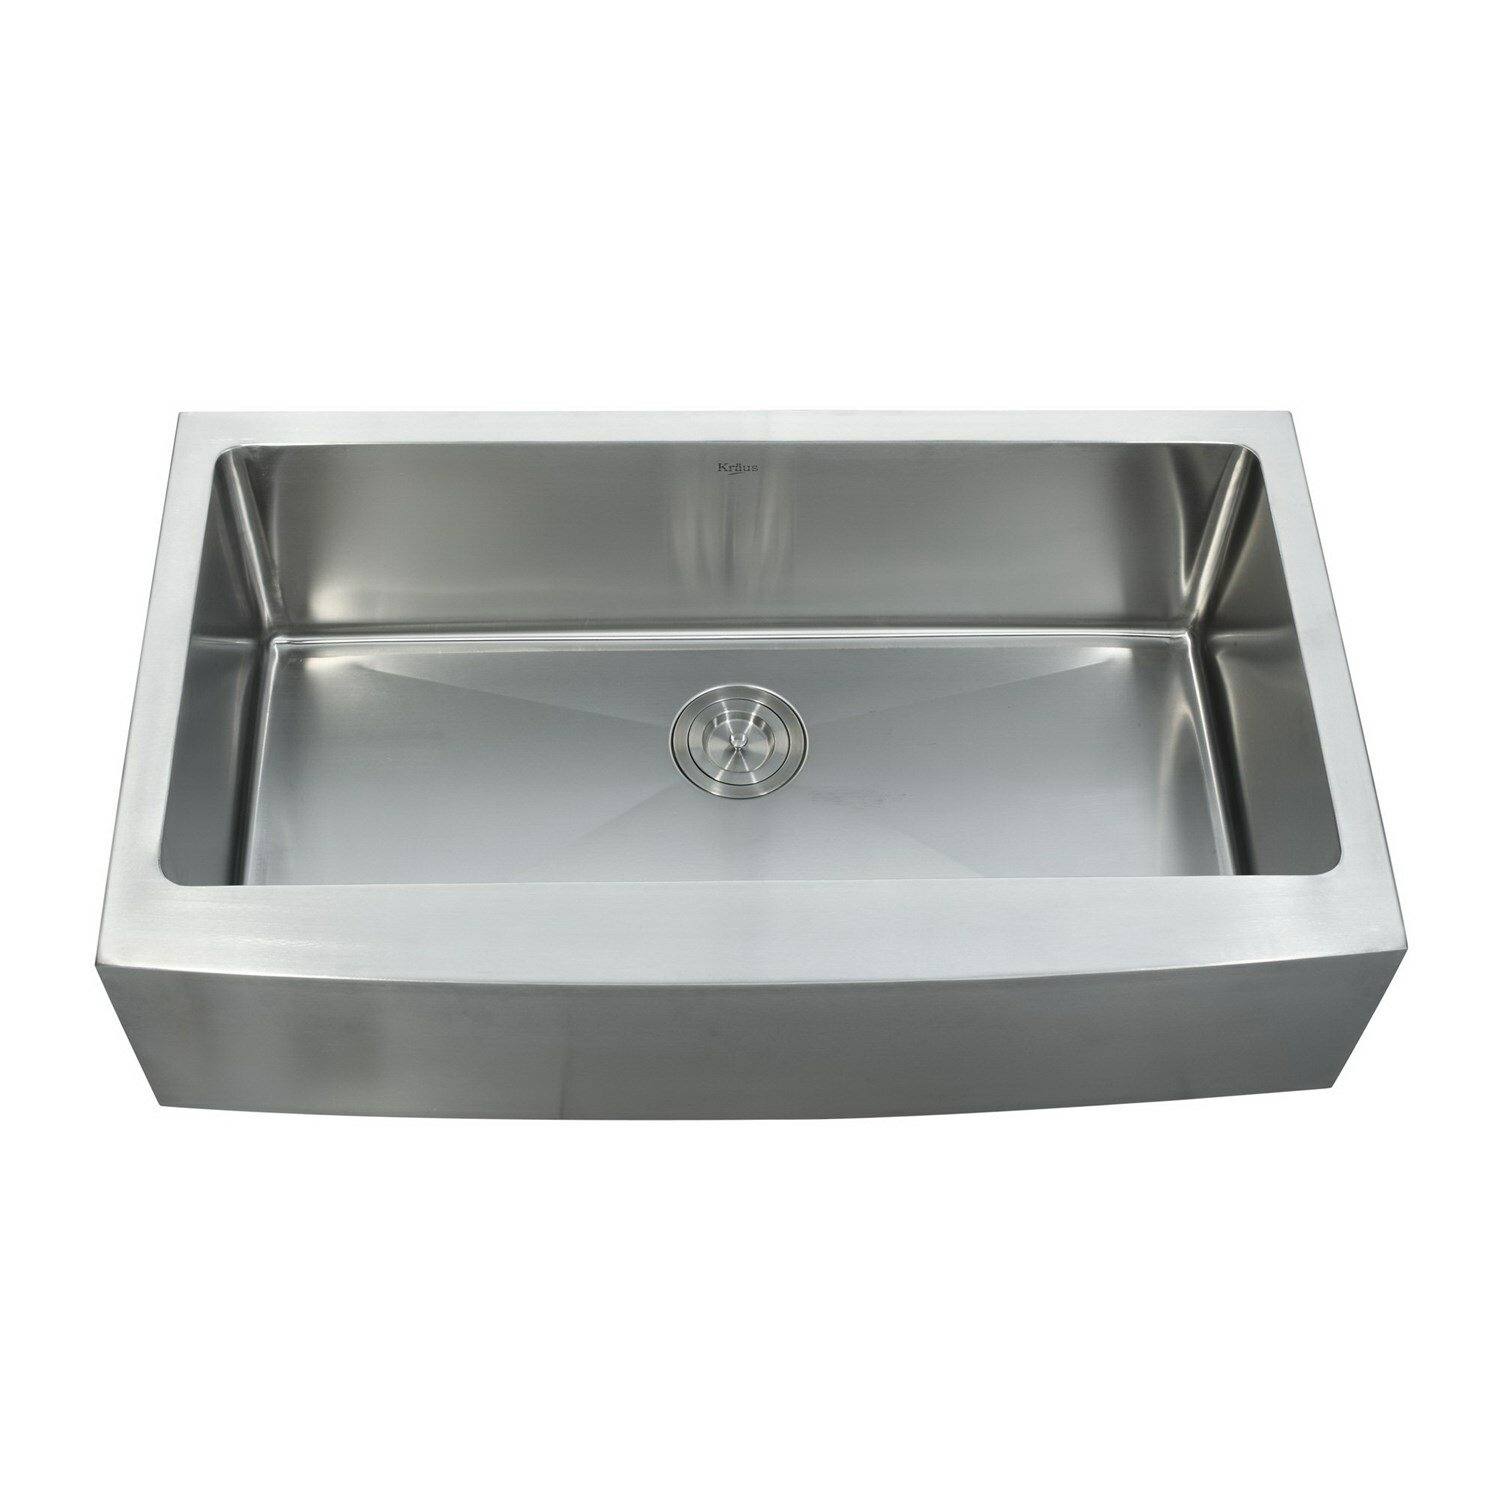 kitchen: 33x22 stainless steel kitchen sink | kitchen sinks